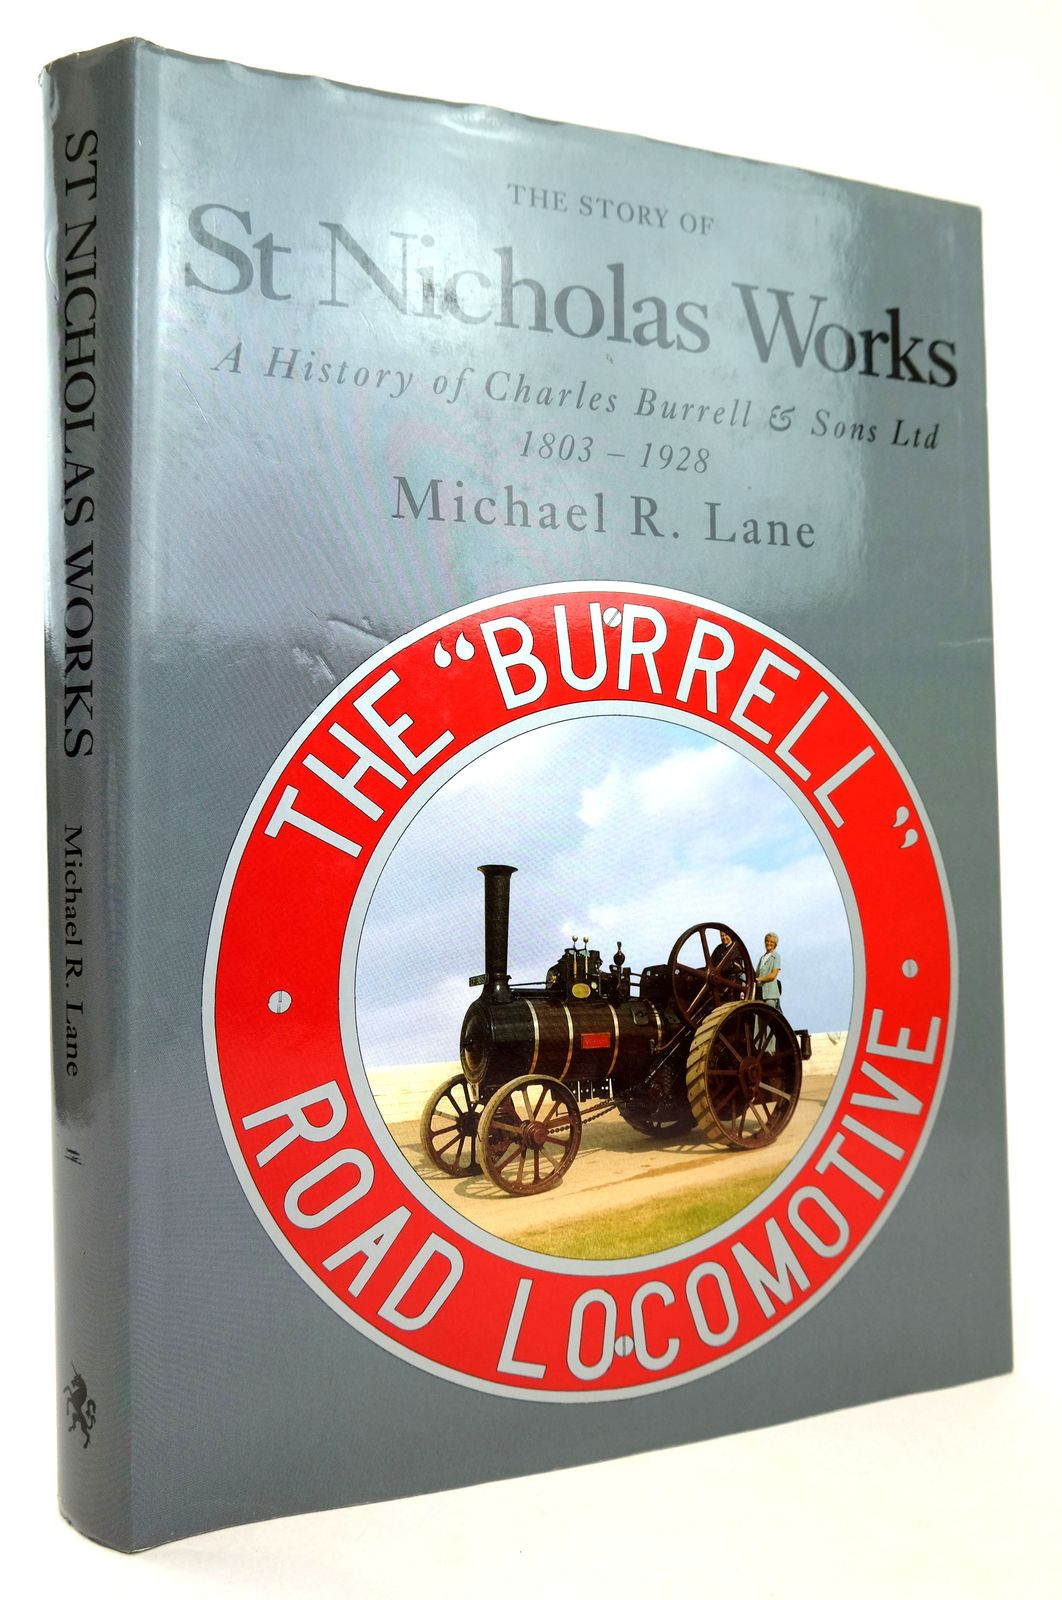 Photo of THE STORY OF ST NICHOLAS WORKS: A HISTORY OF CHARLES BURRELL & SONS LTD. 1803-1928. written by Lane, Michael R. published by The Unicorn Press (STOCK CODE: 1818757)  for sale by Stella & Rose's Books